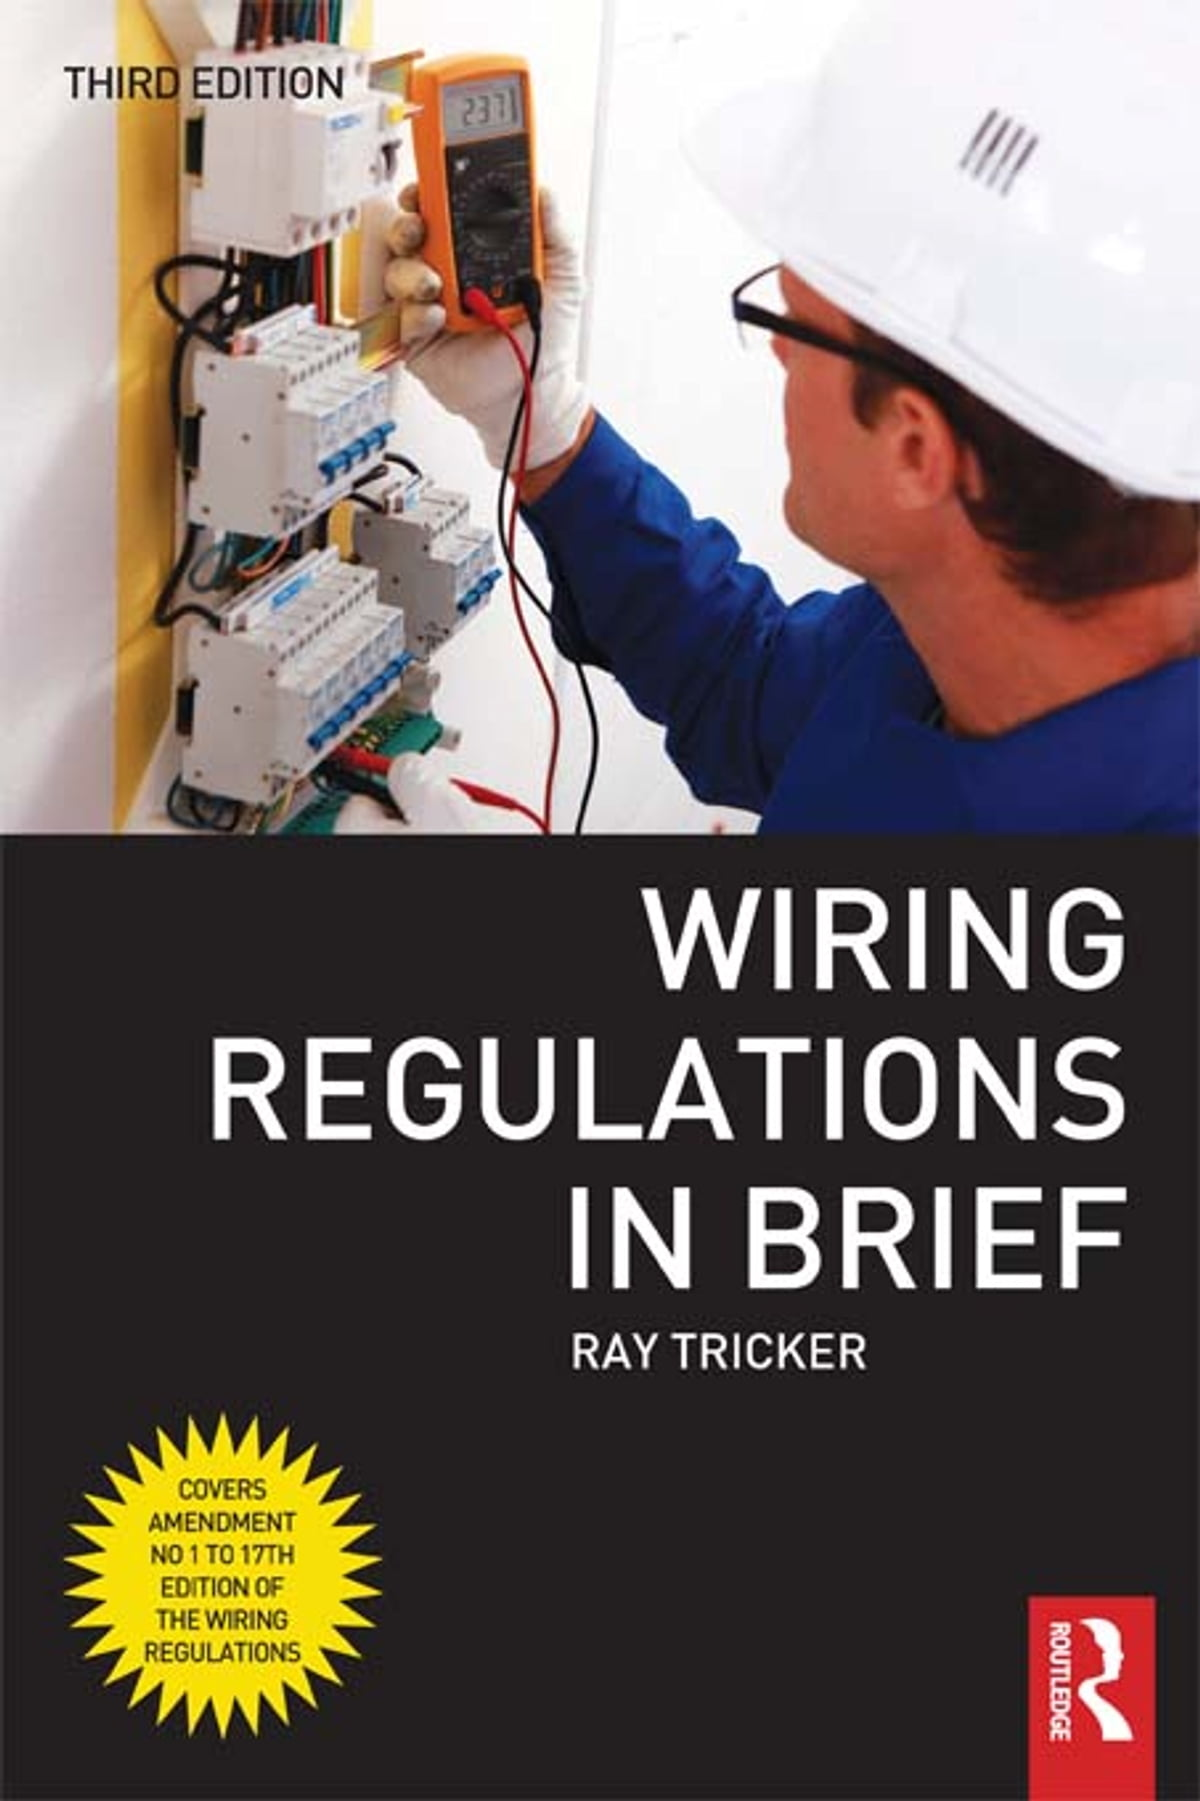 Wiring Regulations In Brief Ebook By Ray Tricker 9781136296291 17th Edition Book Rakuten Kobo